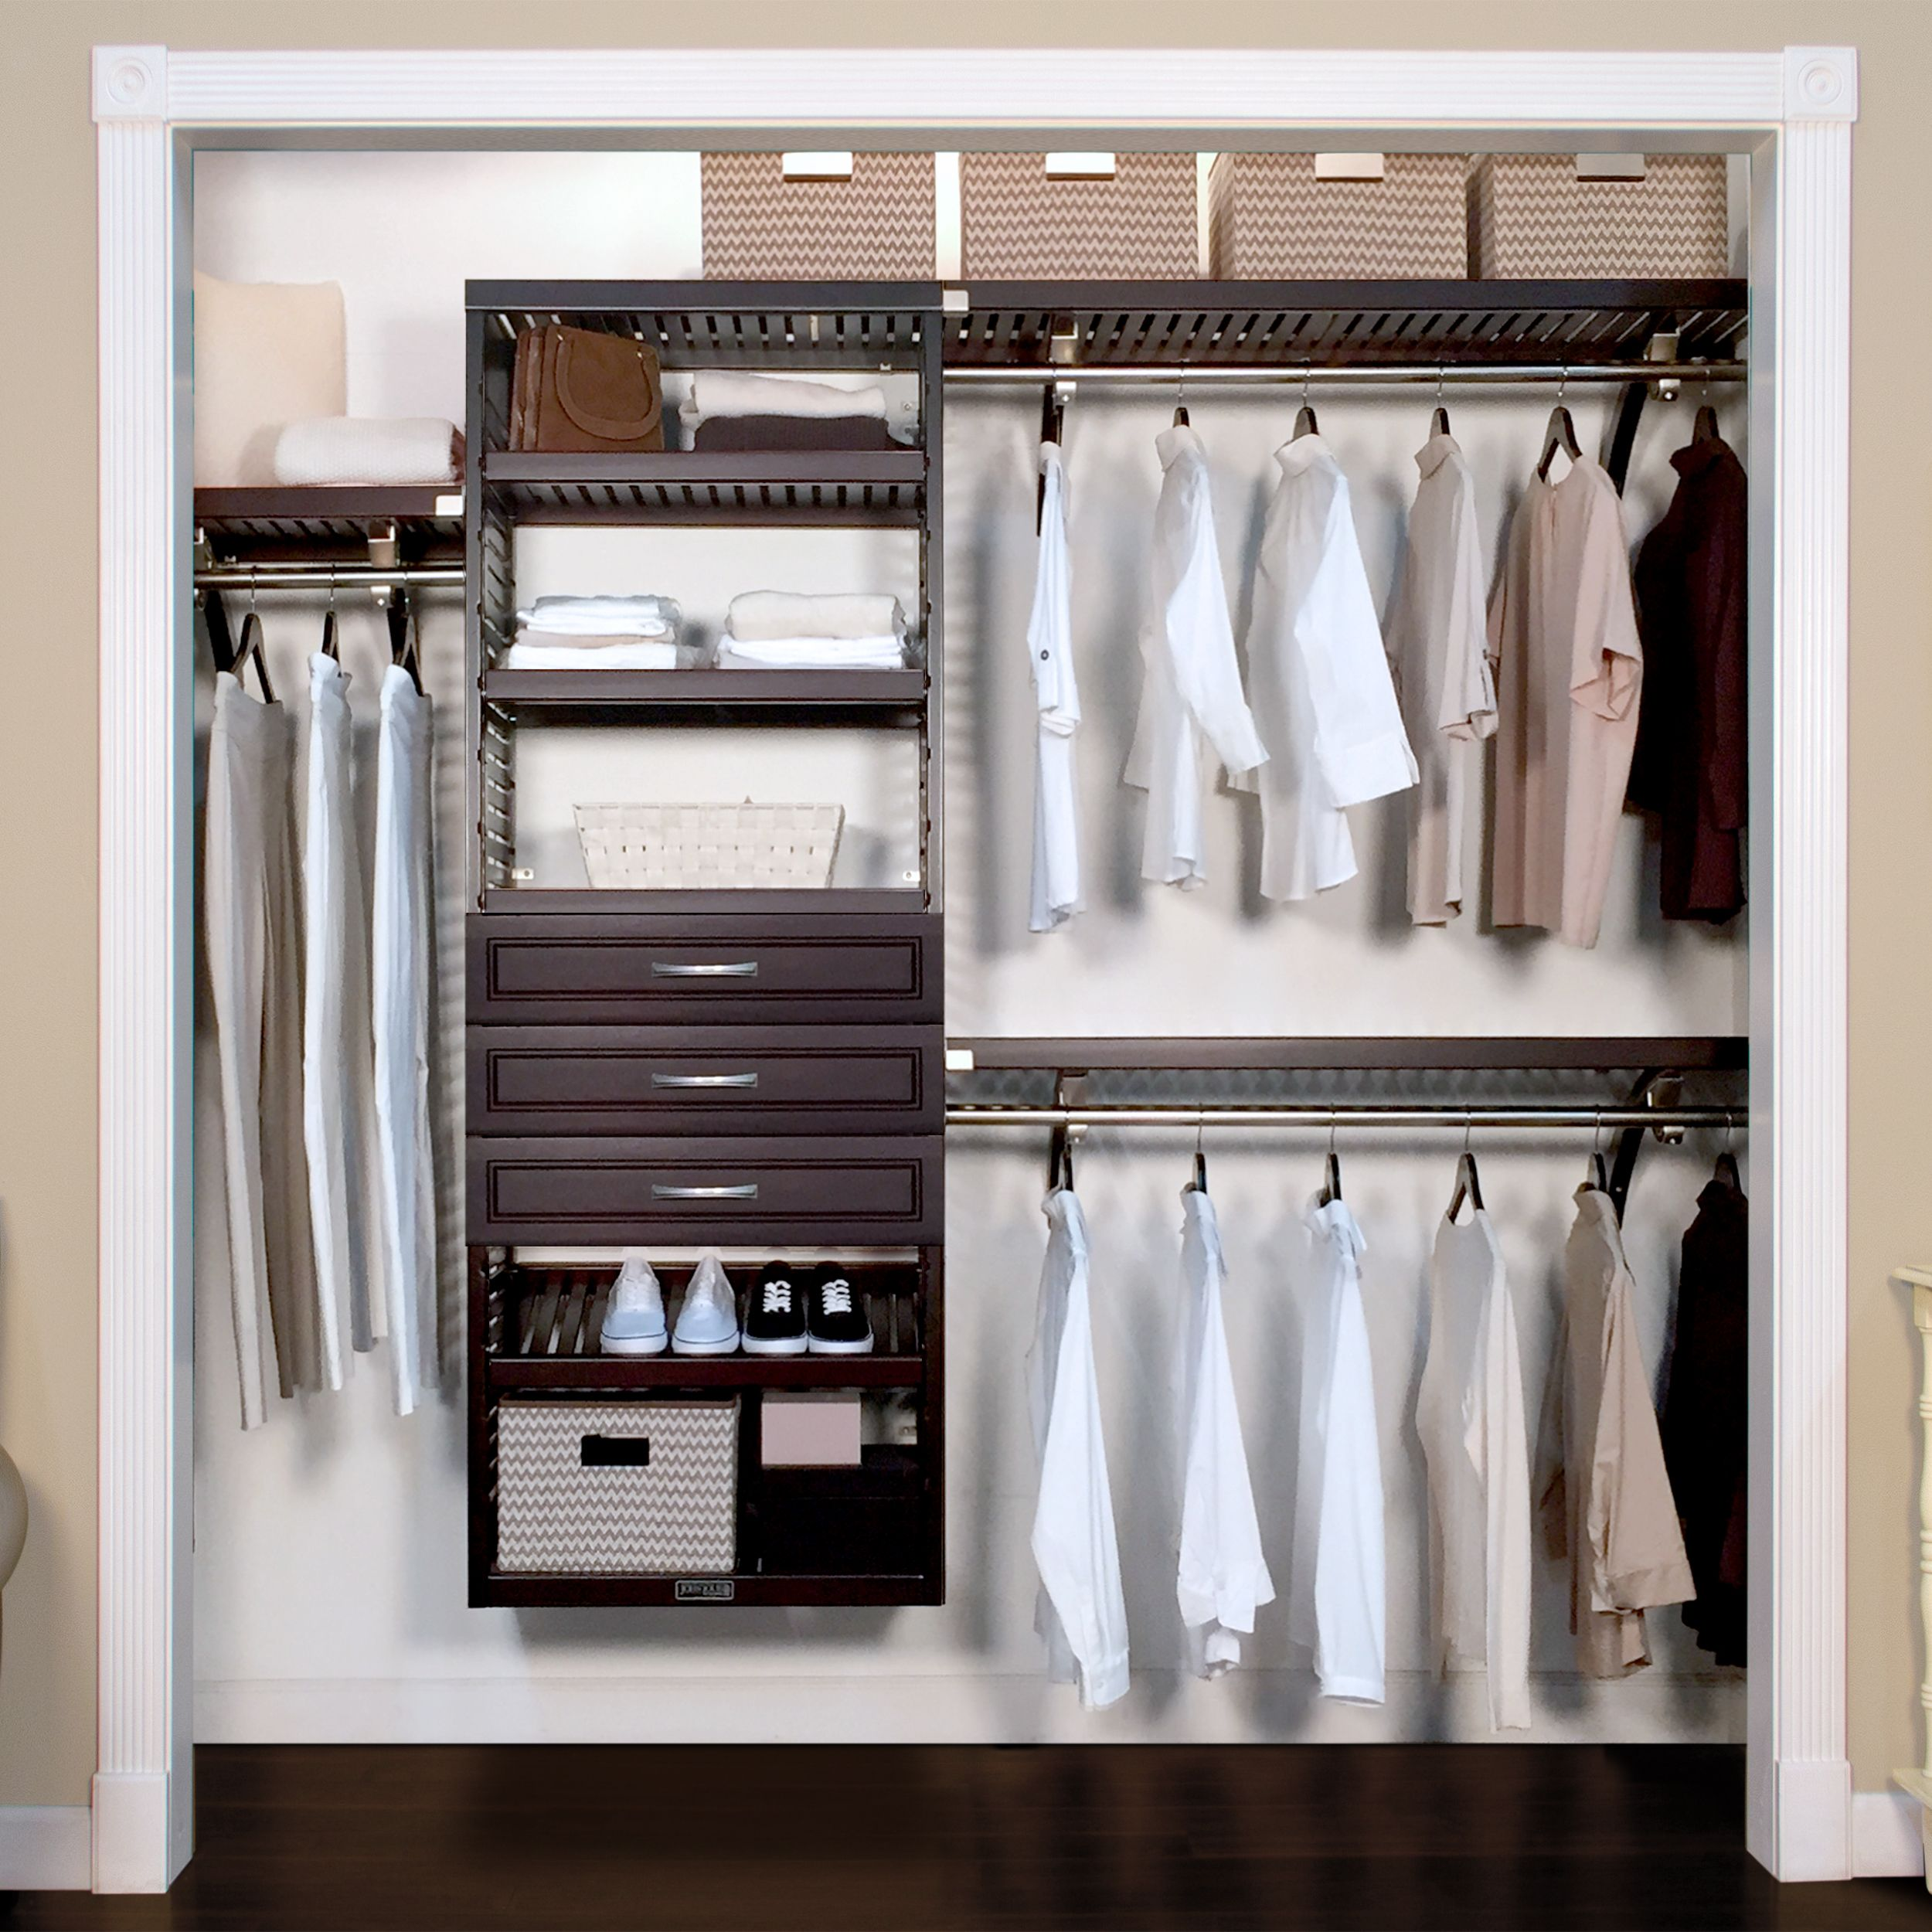 16in deep woodcrest deluxe organizer 3 drawers 6in